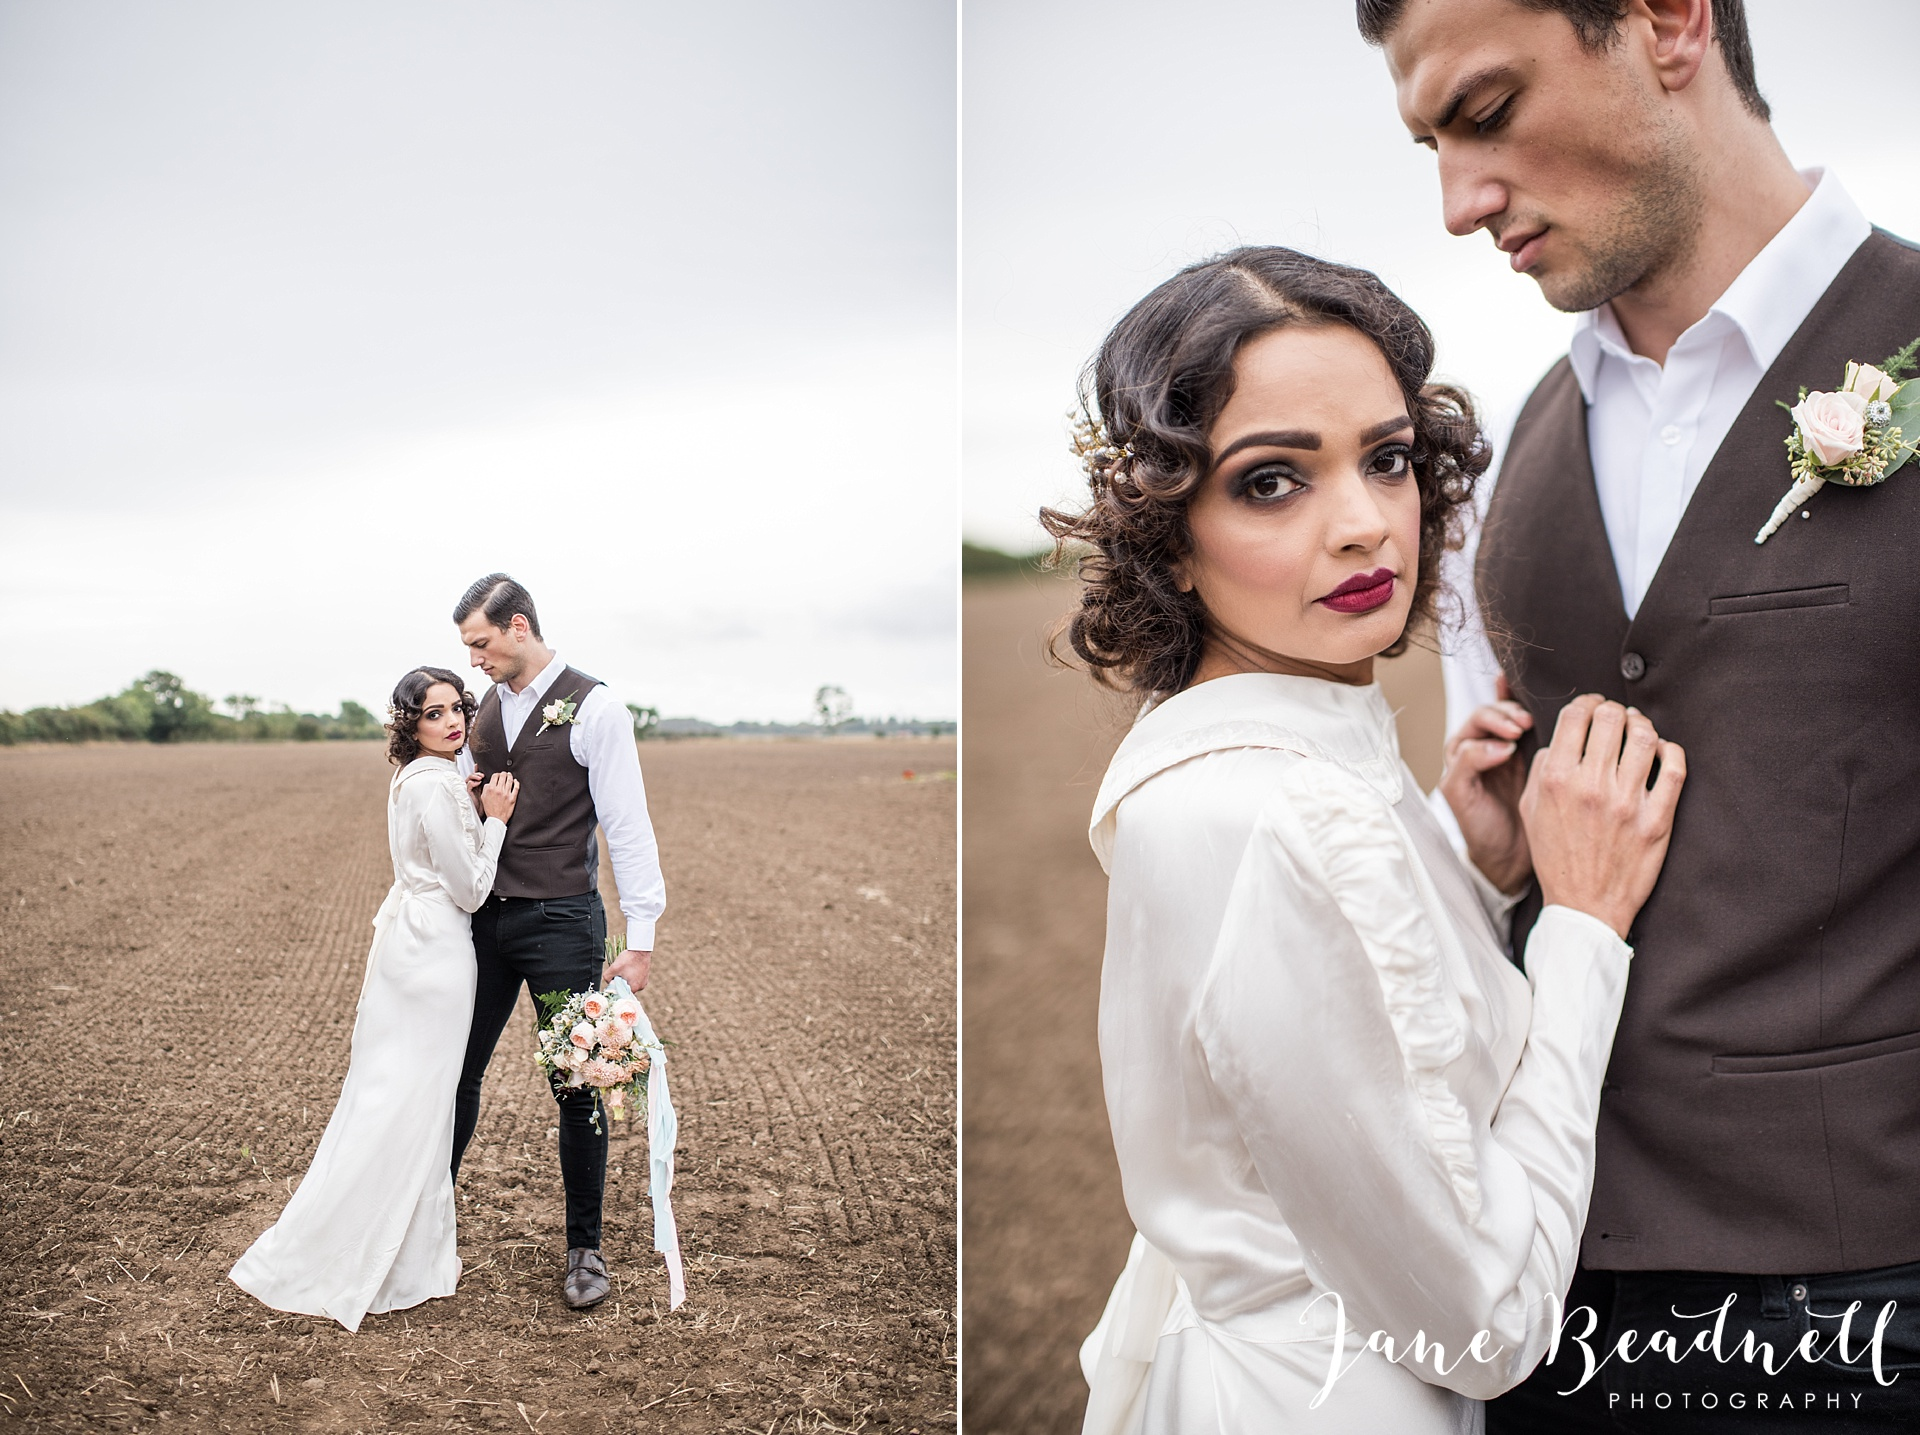 fine-art-wedding-photographer-jane-beadnell-photography-yorkshire-wedding-photographer_0019